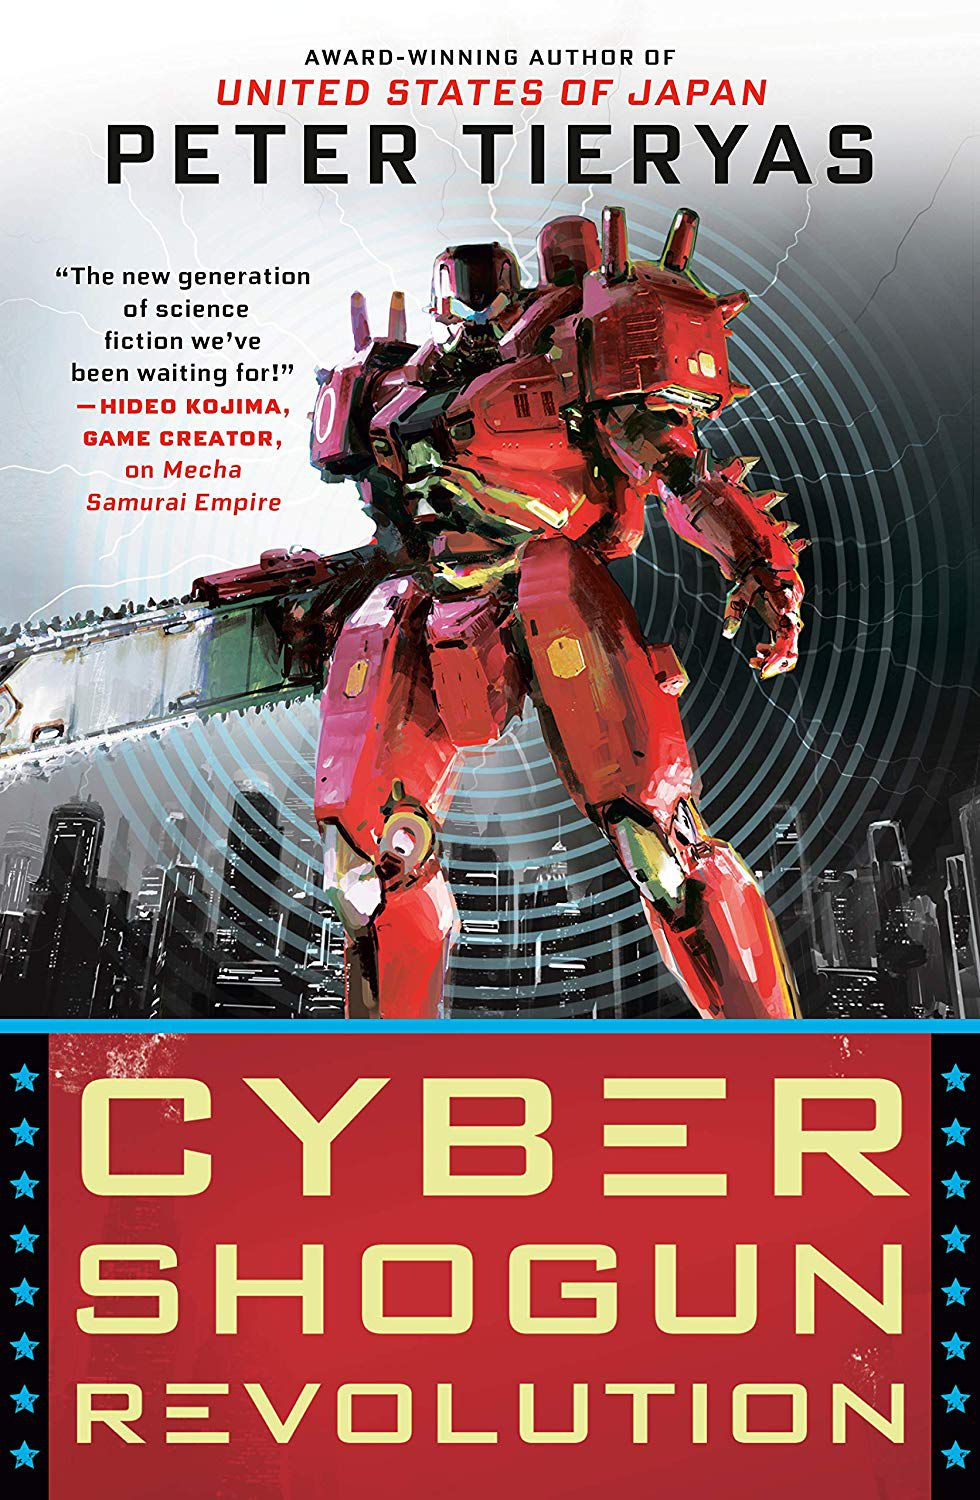 Cyber Shogun Revolution by Peter Tieryas has a giant robot with a chainsaw arm